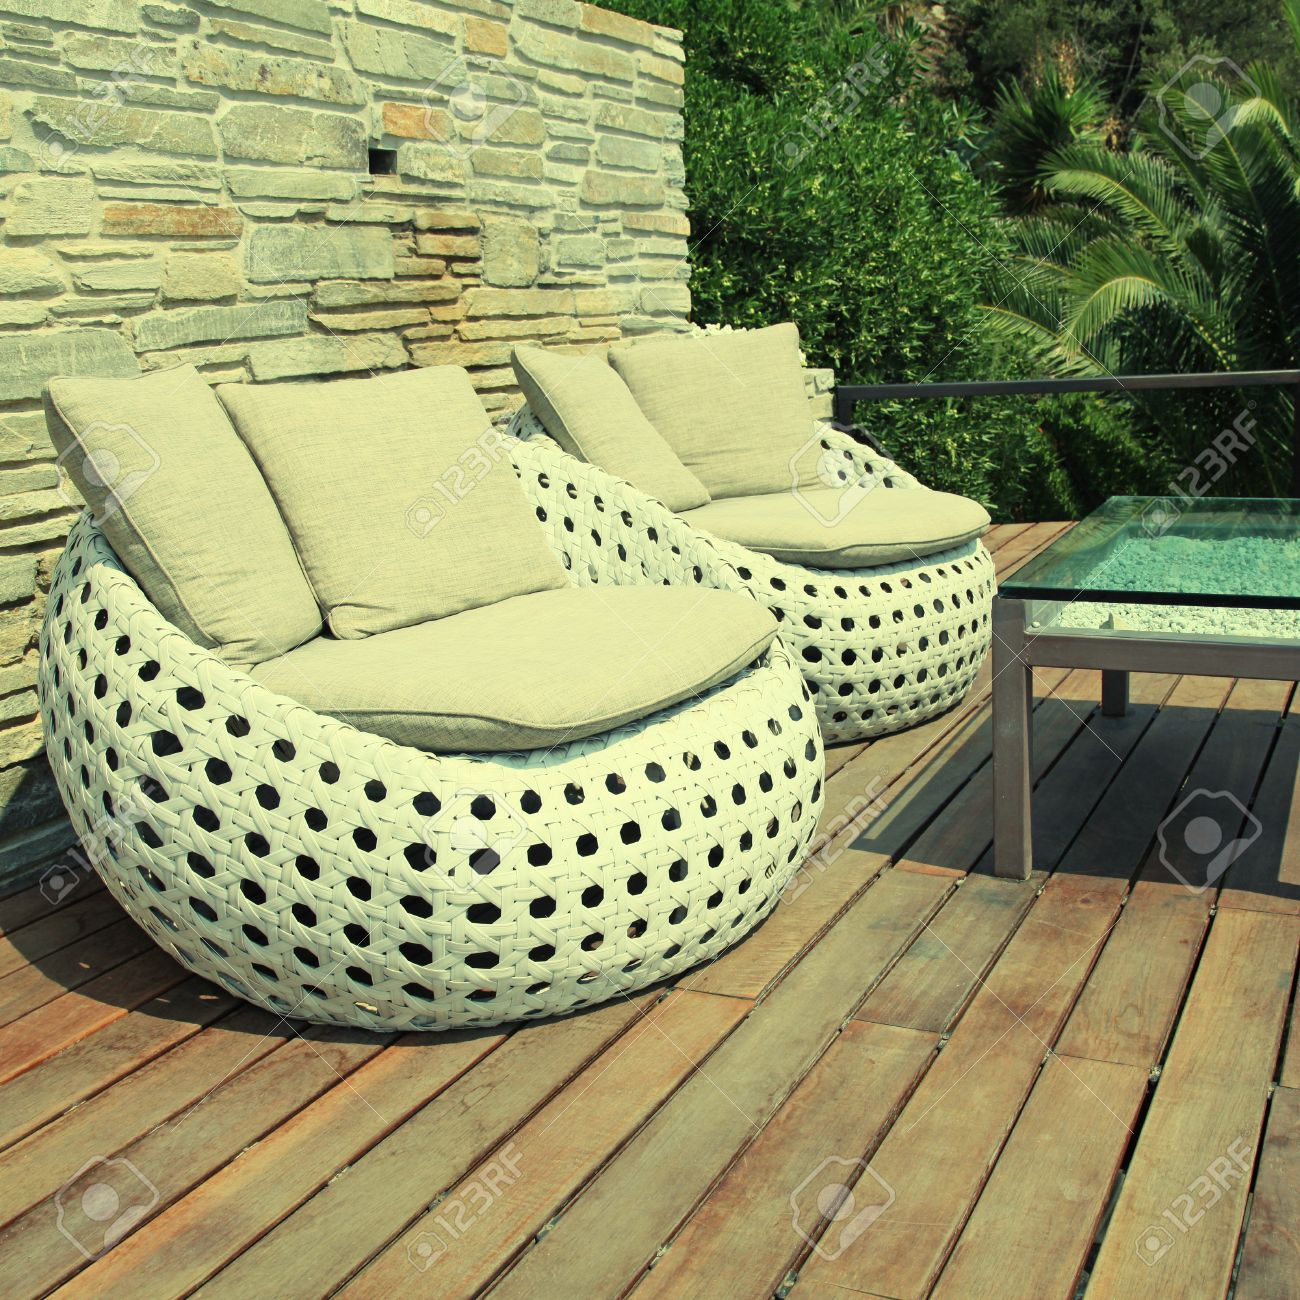 Stock photo white outdoor furniture round rattan armchairs and glass table on wood resort terrace greece square toned image effect